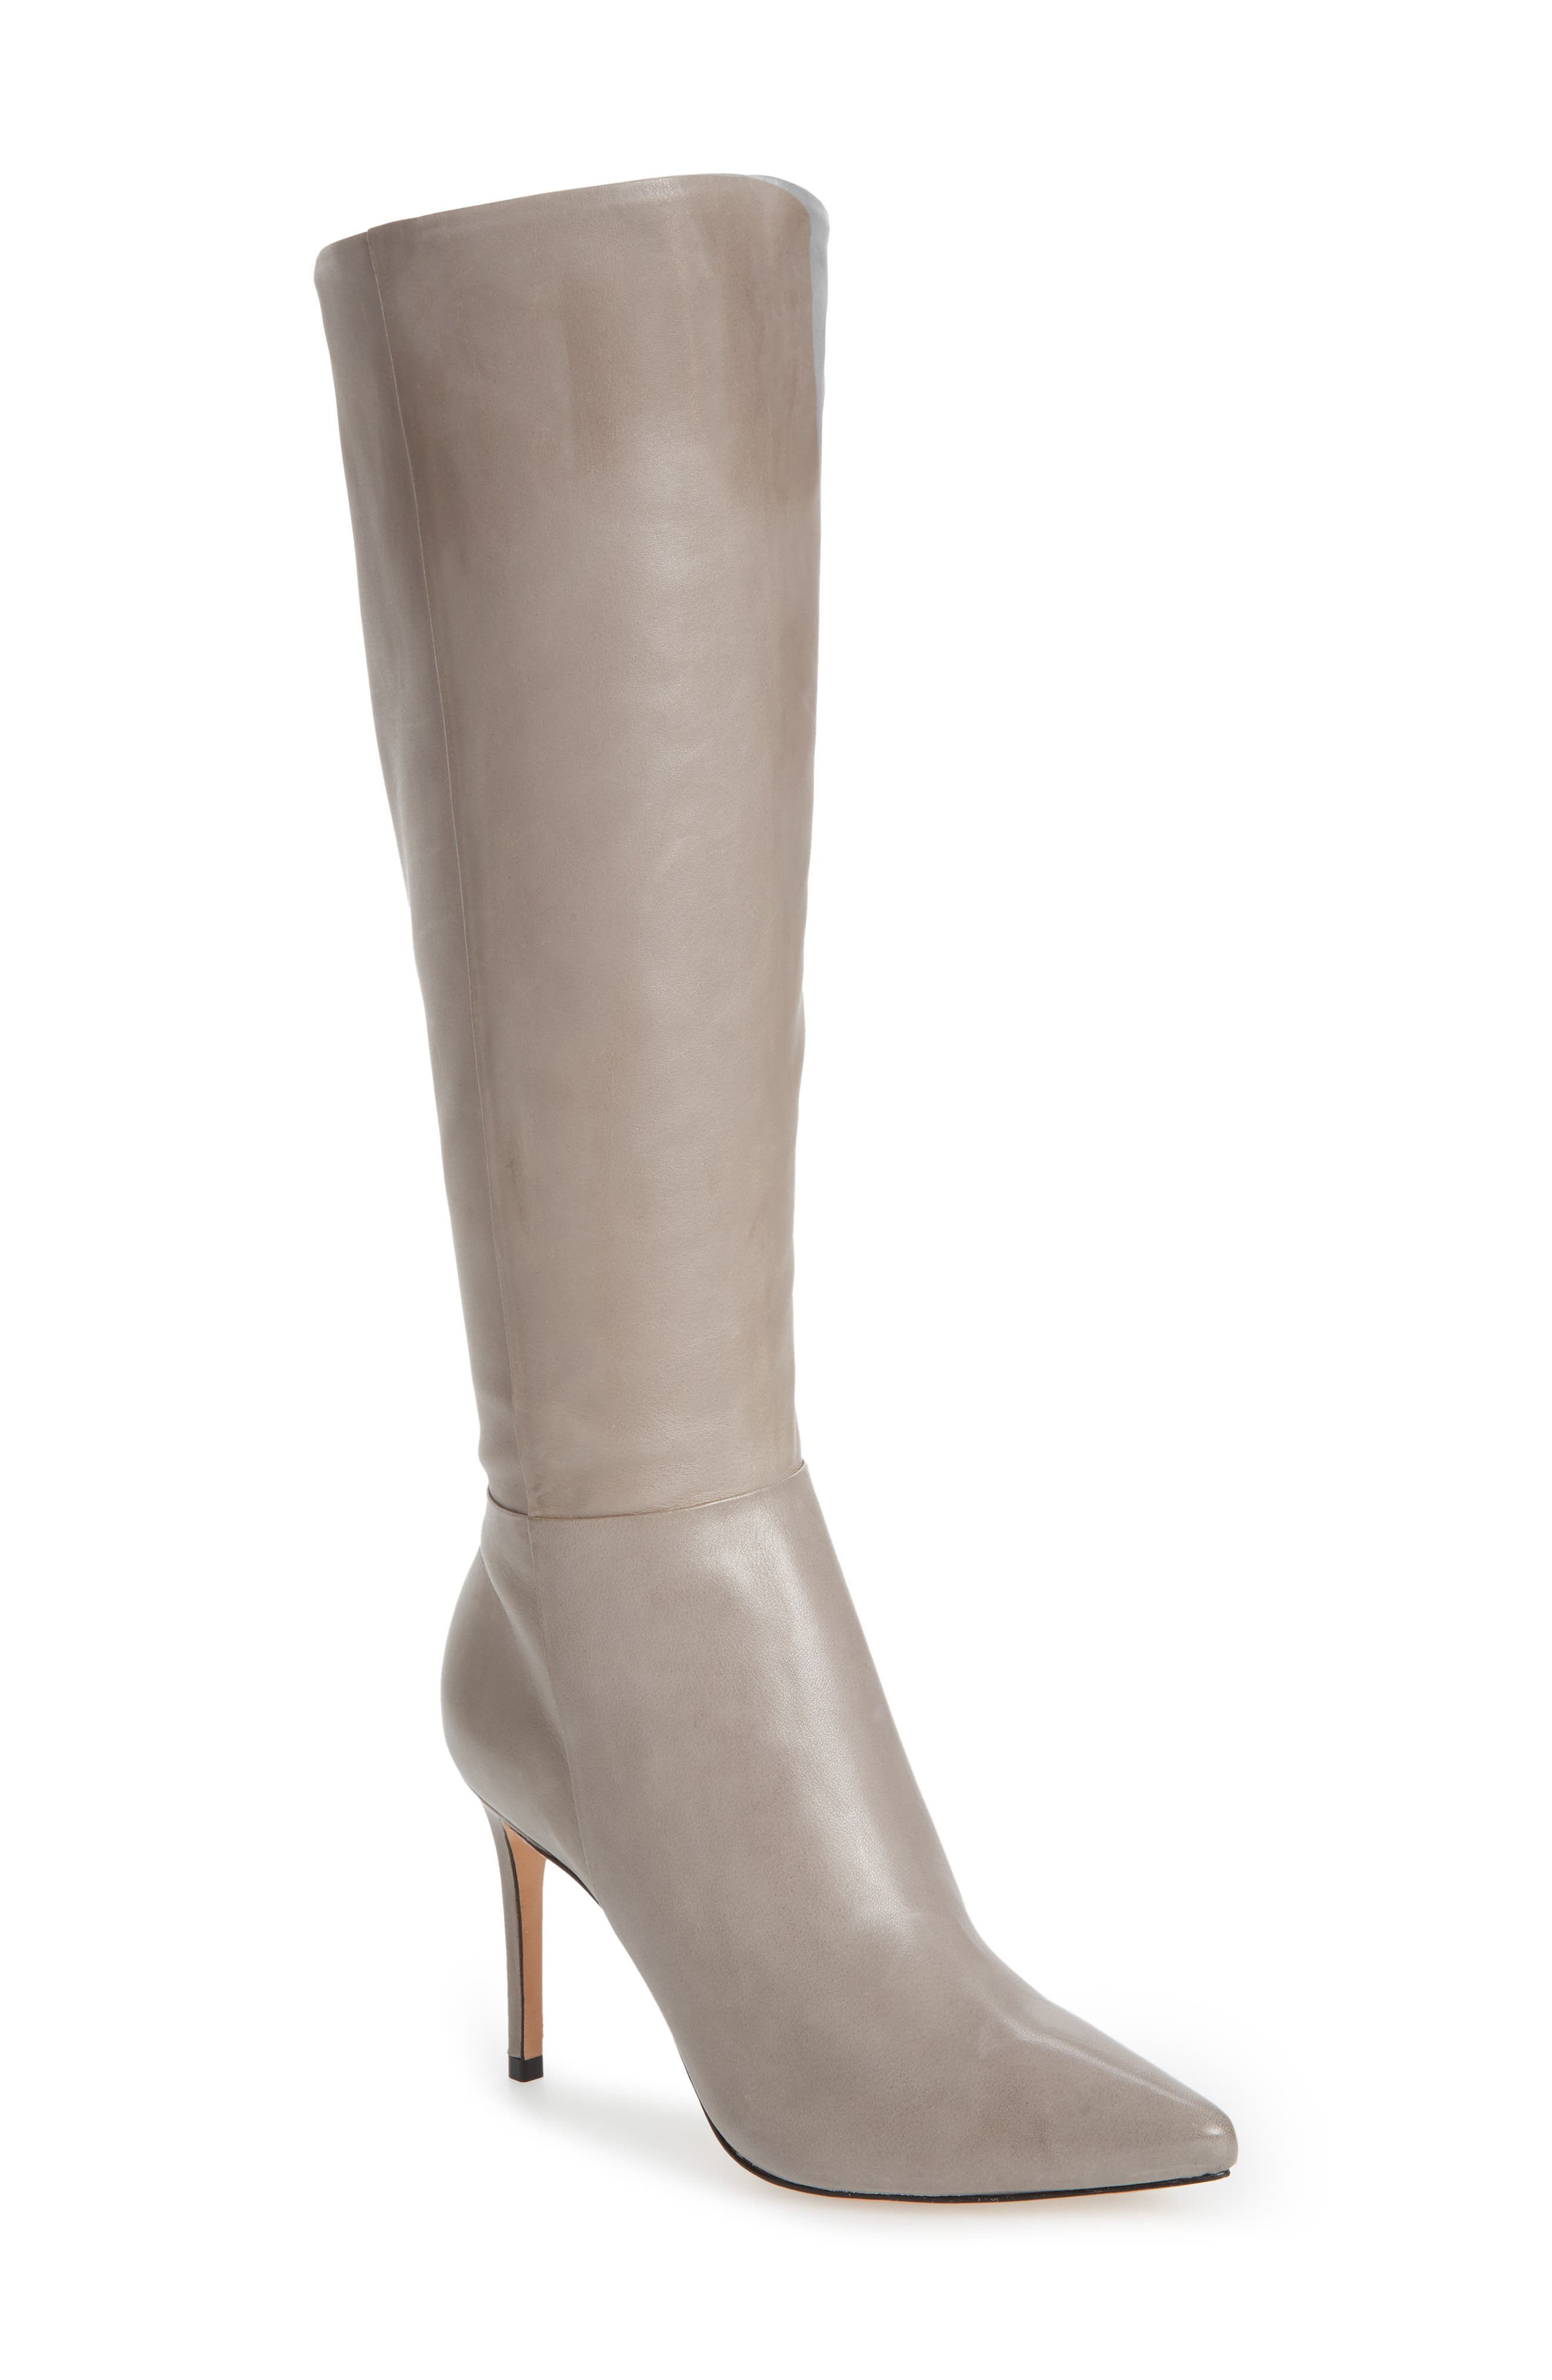 Magalli Knee High Boot,                             Main thumbnail 1, color,                             MOUSE LEATHER